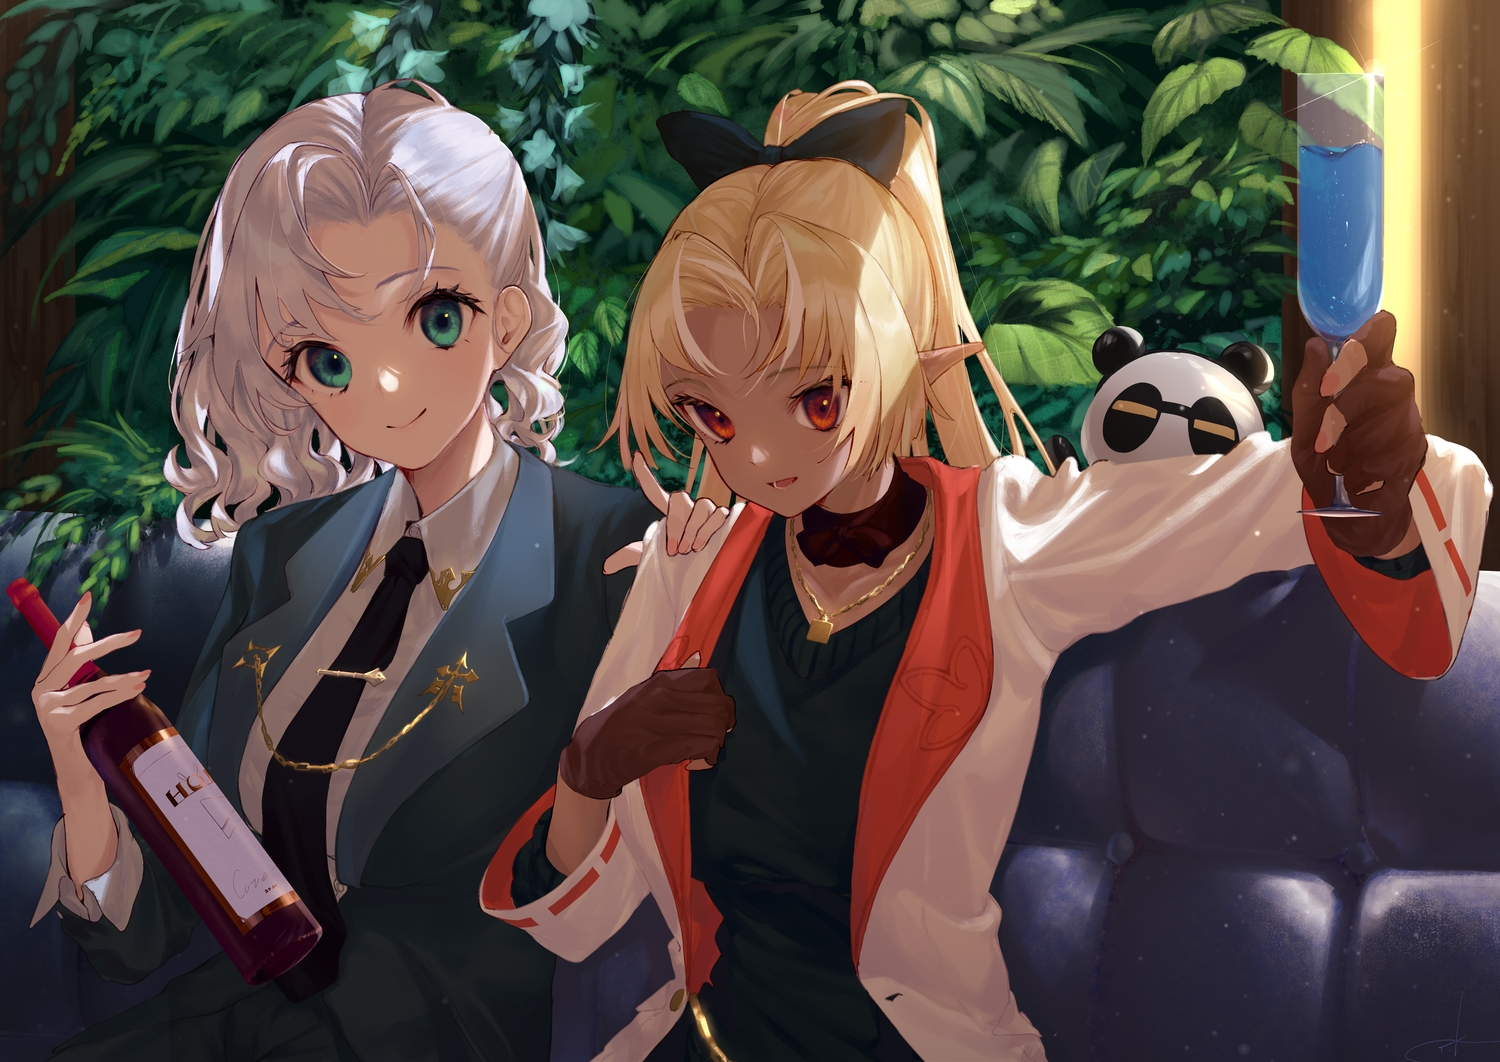 2girls blonde_hair blush couch drink gloves green_eyes hololive necklace pointed_ears ponytail red_eyes shiranui_flare shirogane_noel takubon tie white_hair